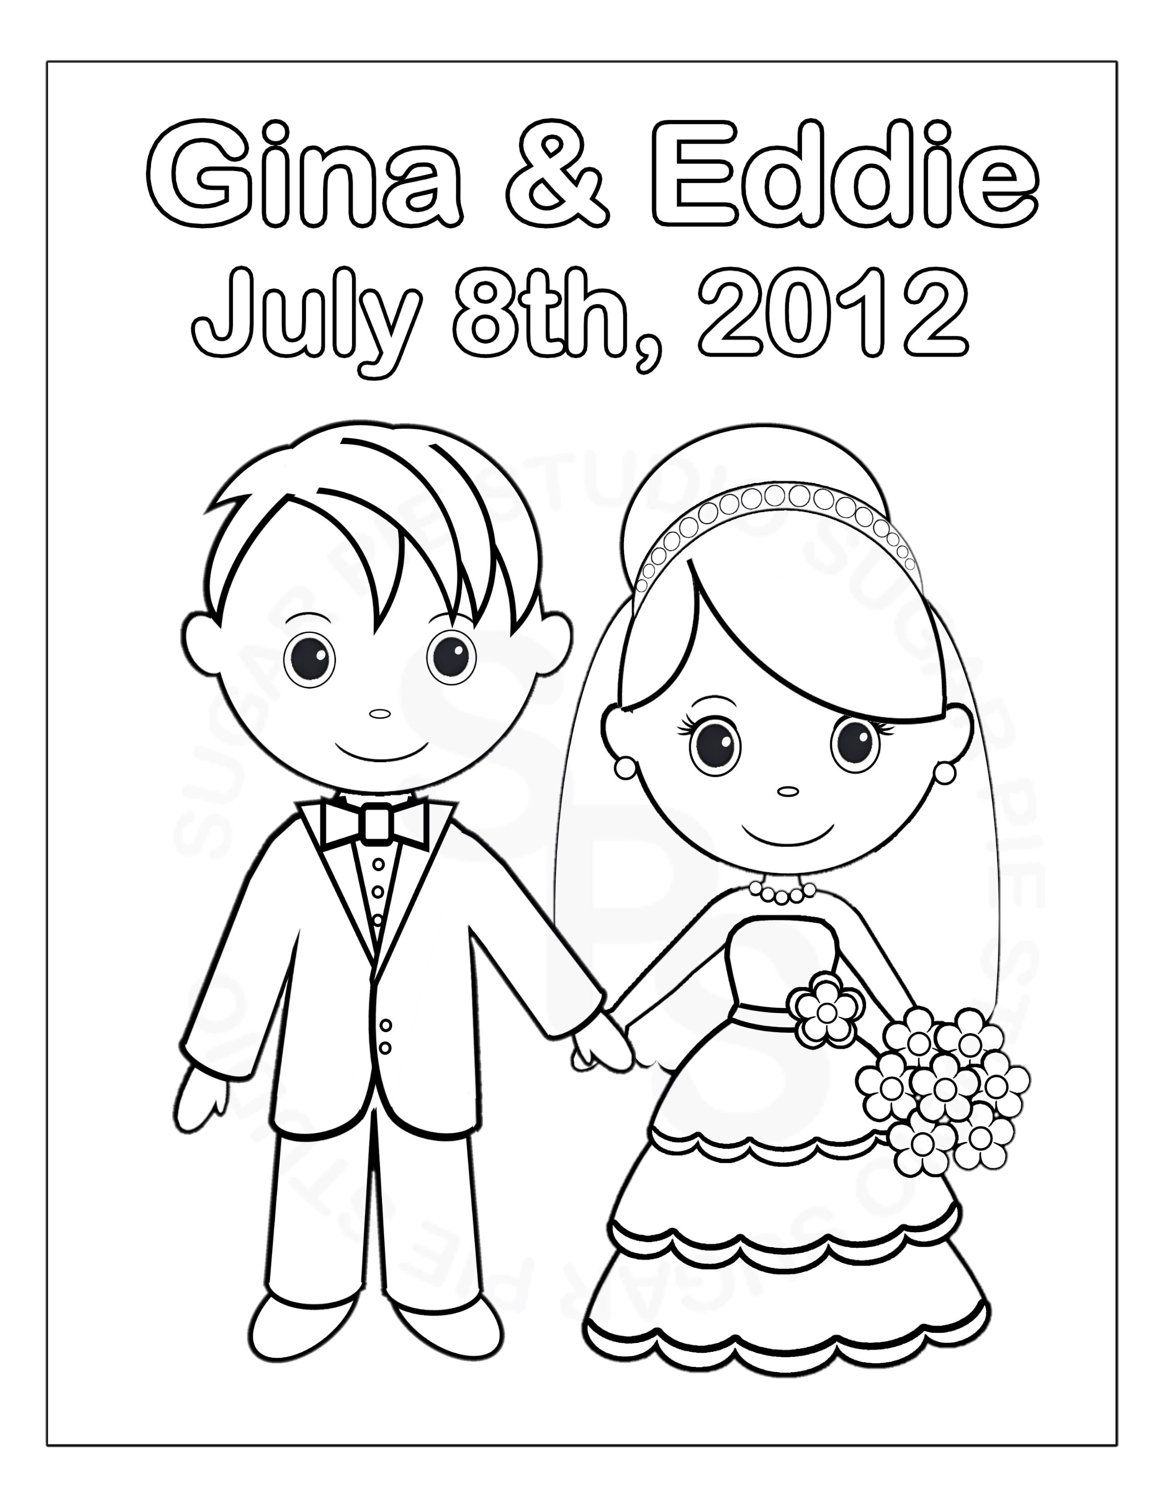 personalized printable groom wedding favor